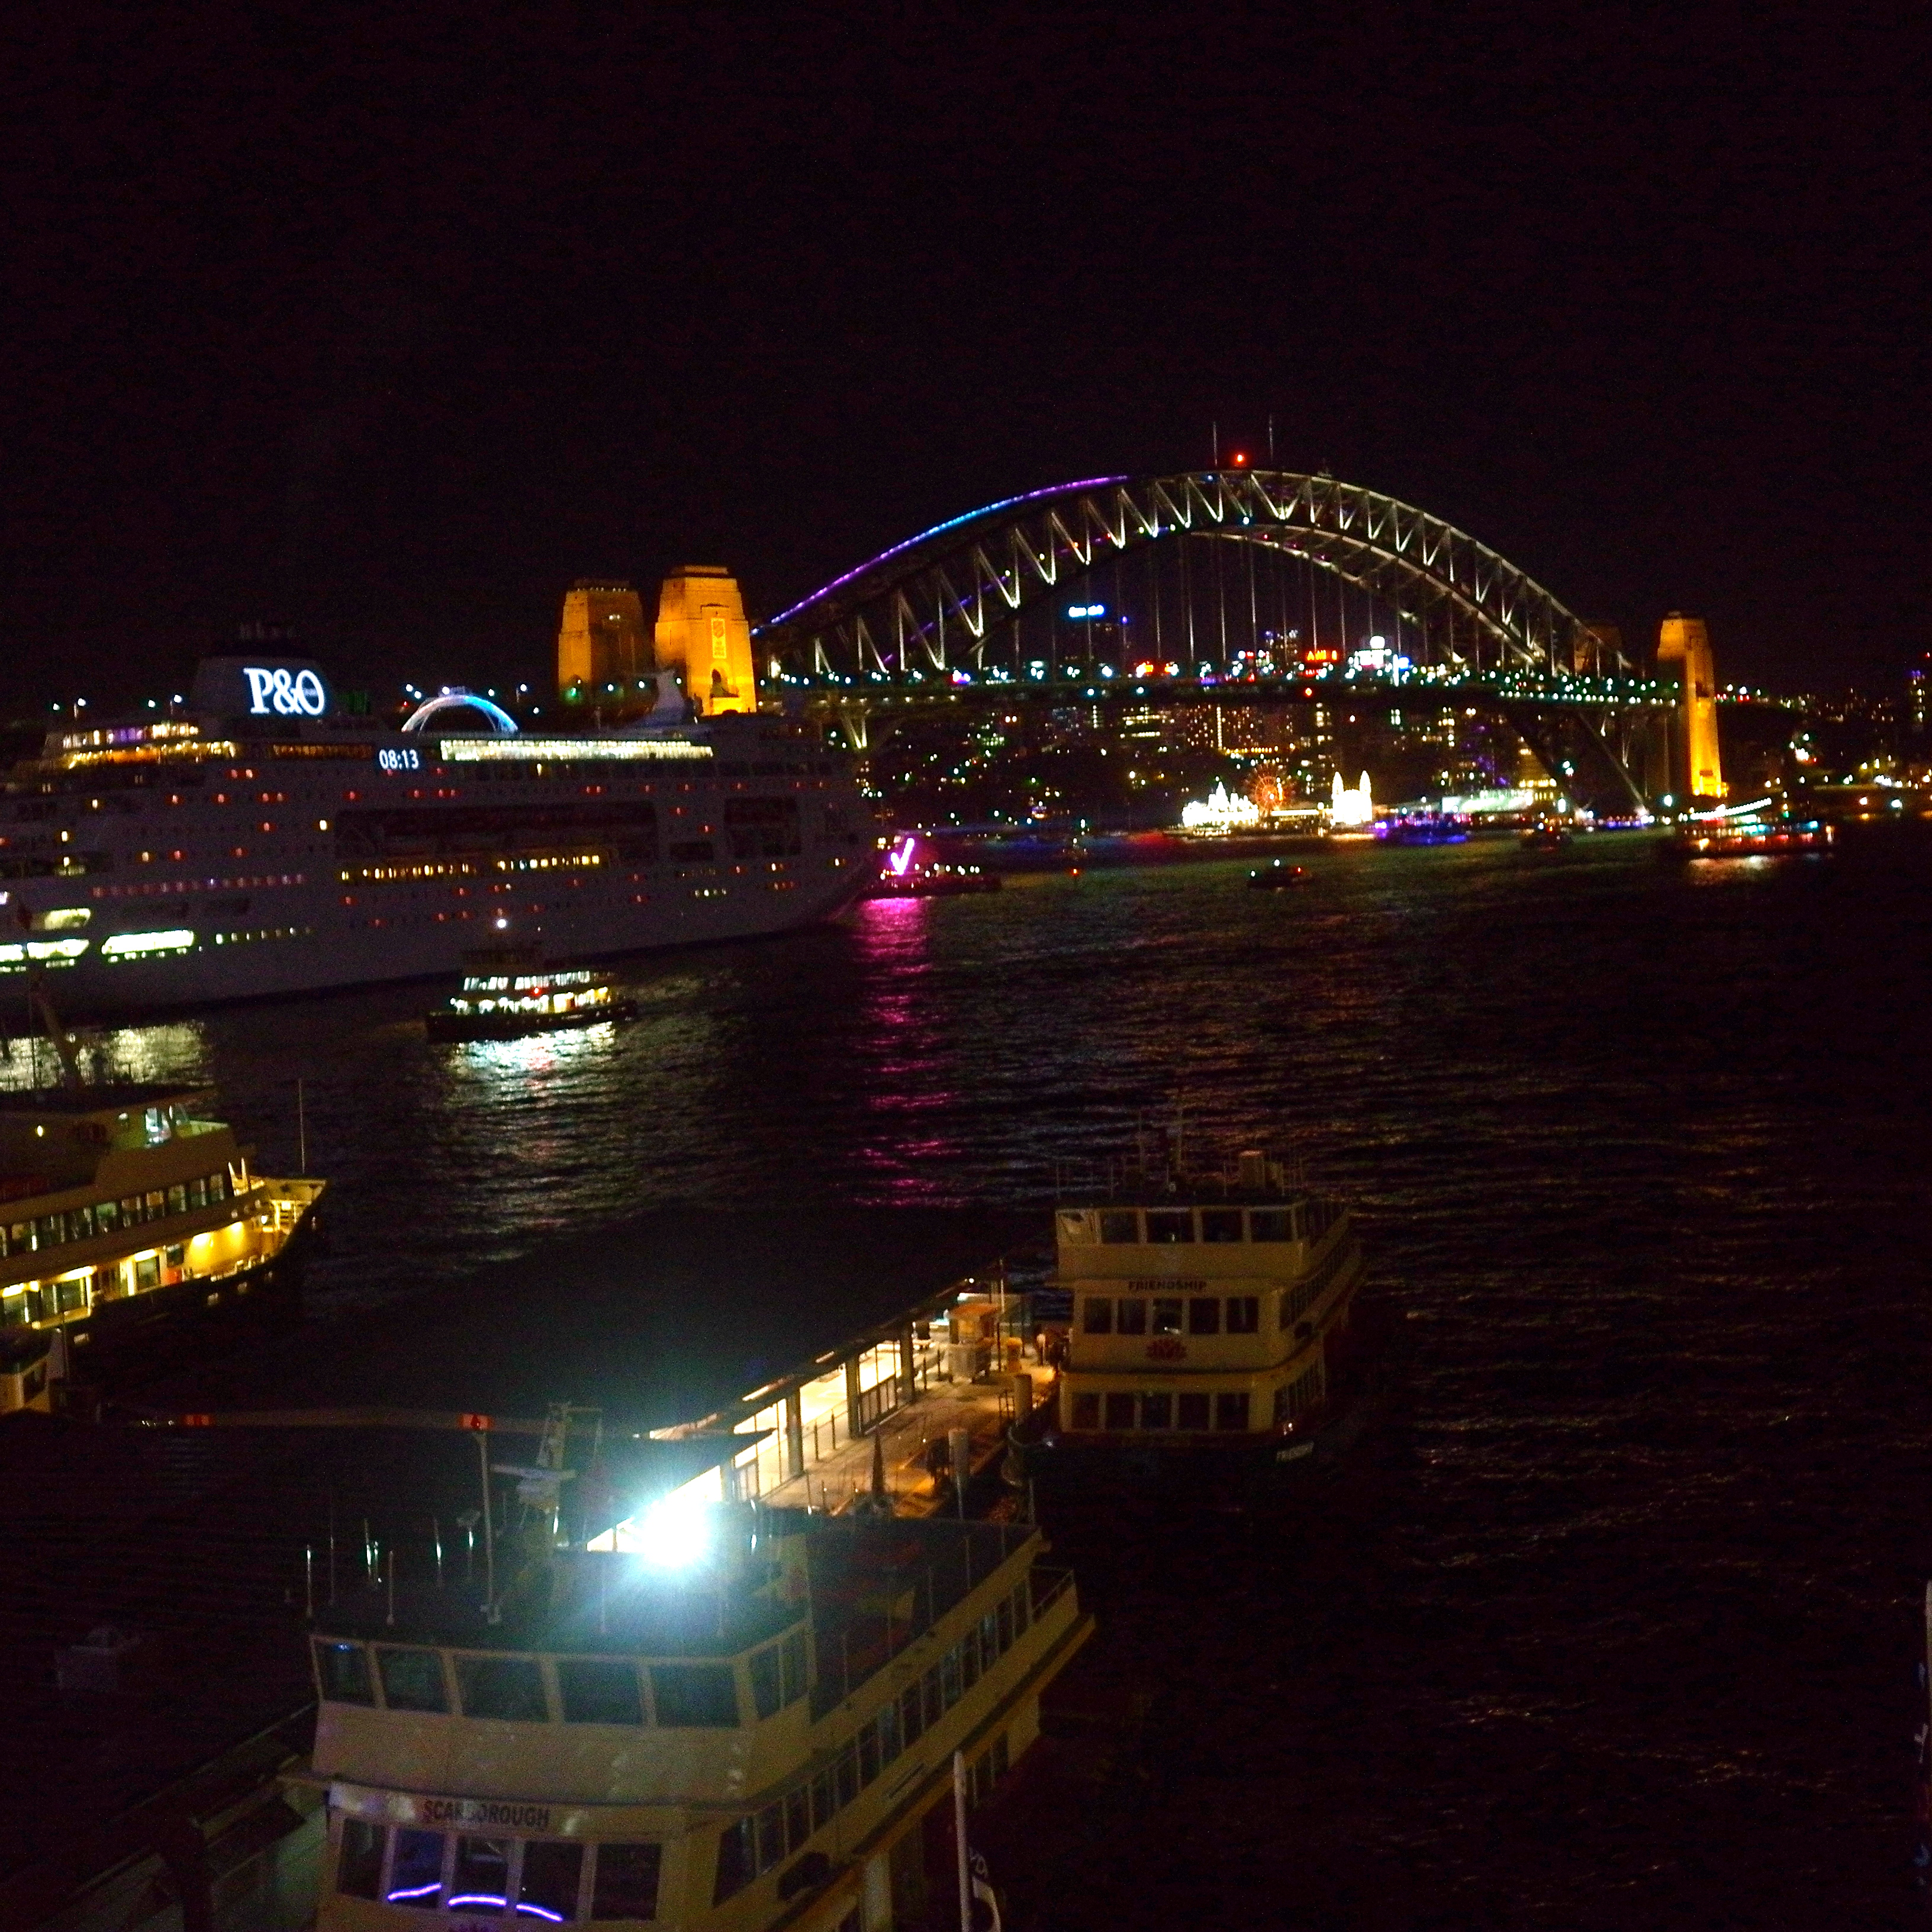 Circular Quay from the Cahill Expressway